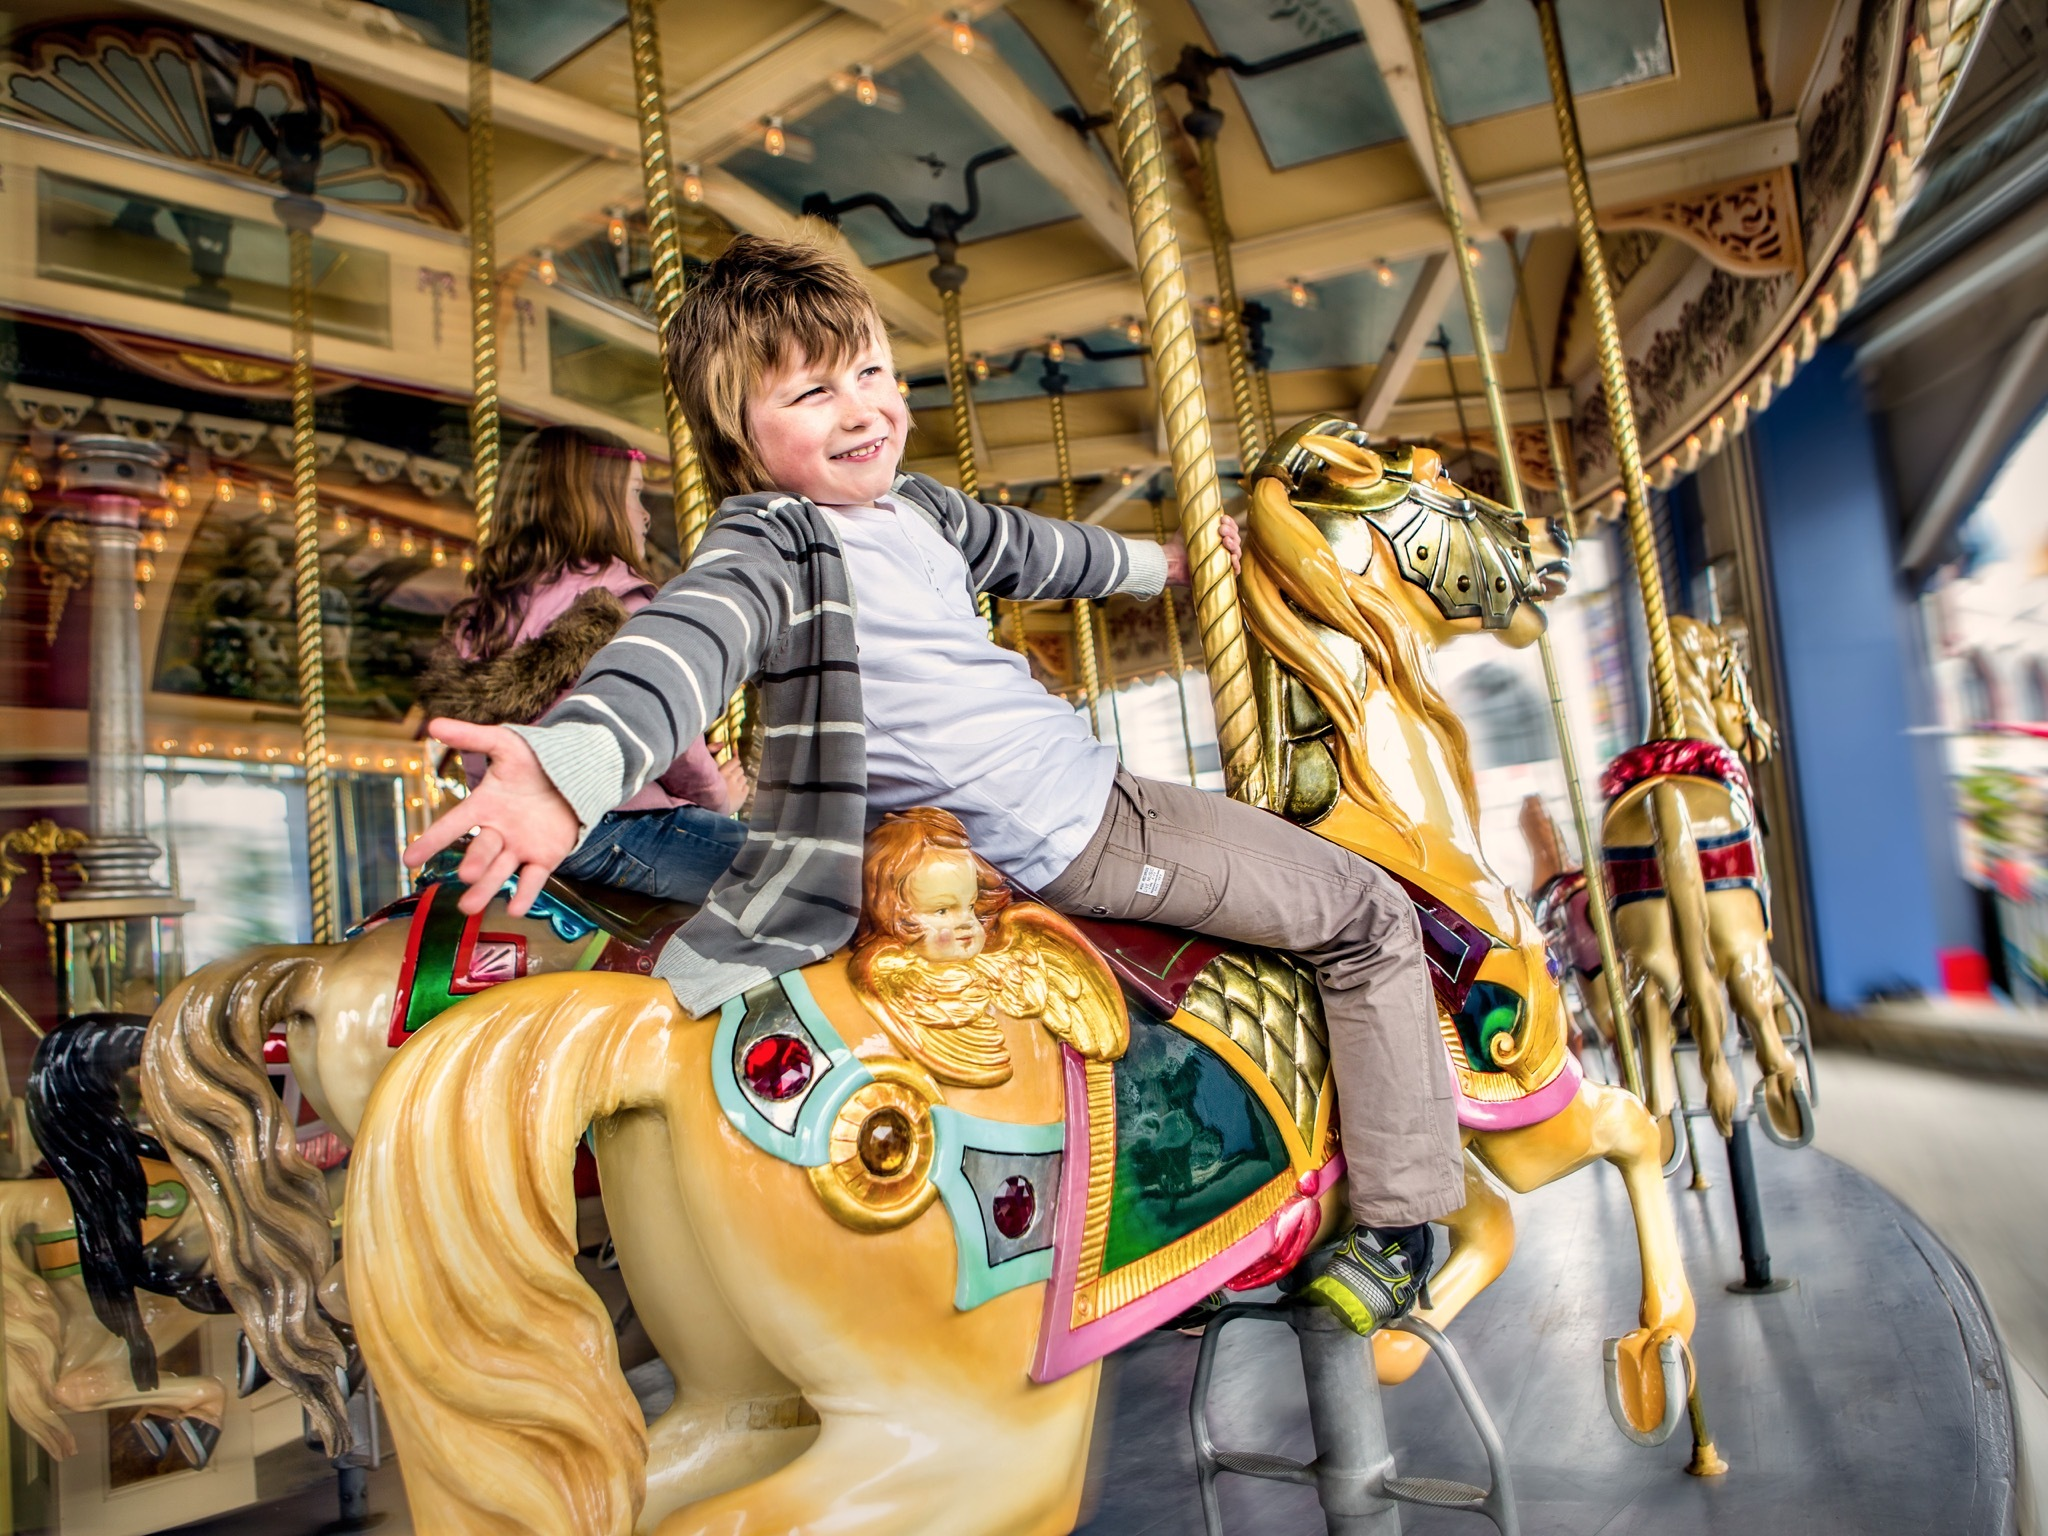 A boy rides a horse on the carousel at Luna Park